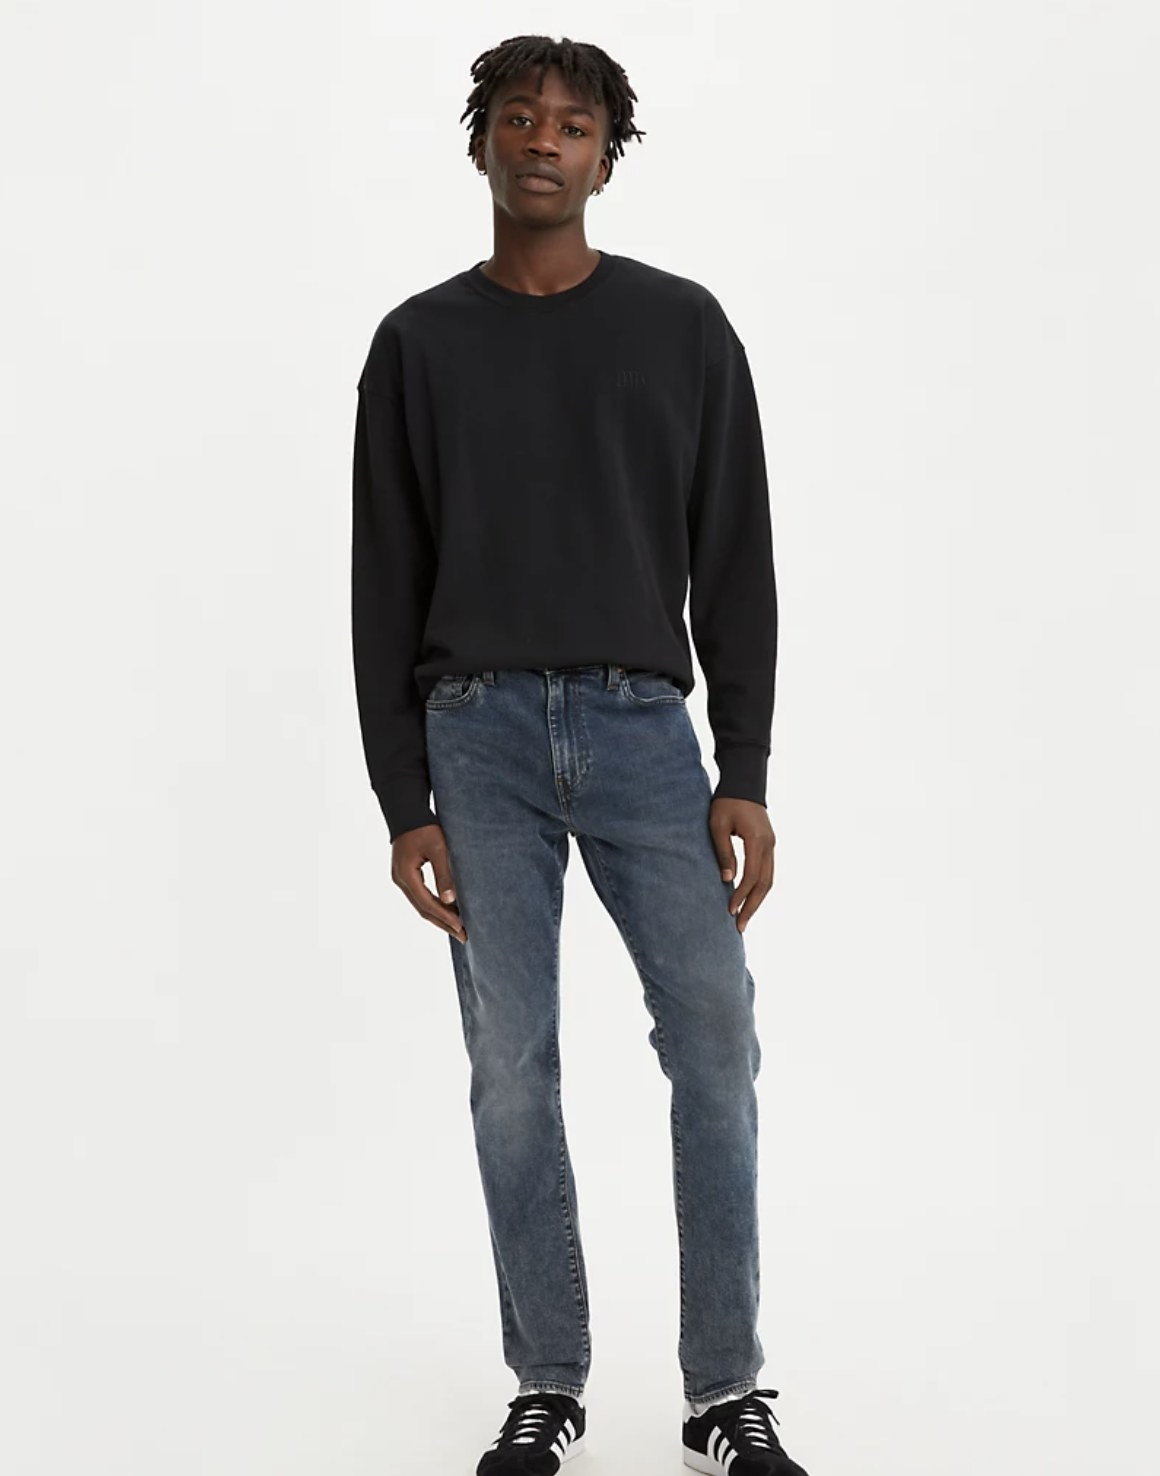 Model is wearing a black sweater and dark denim jeans